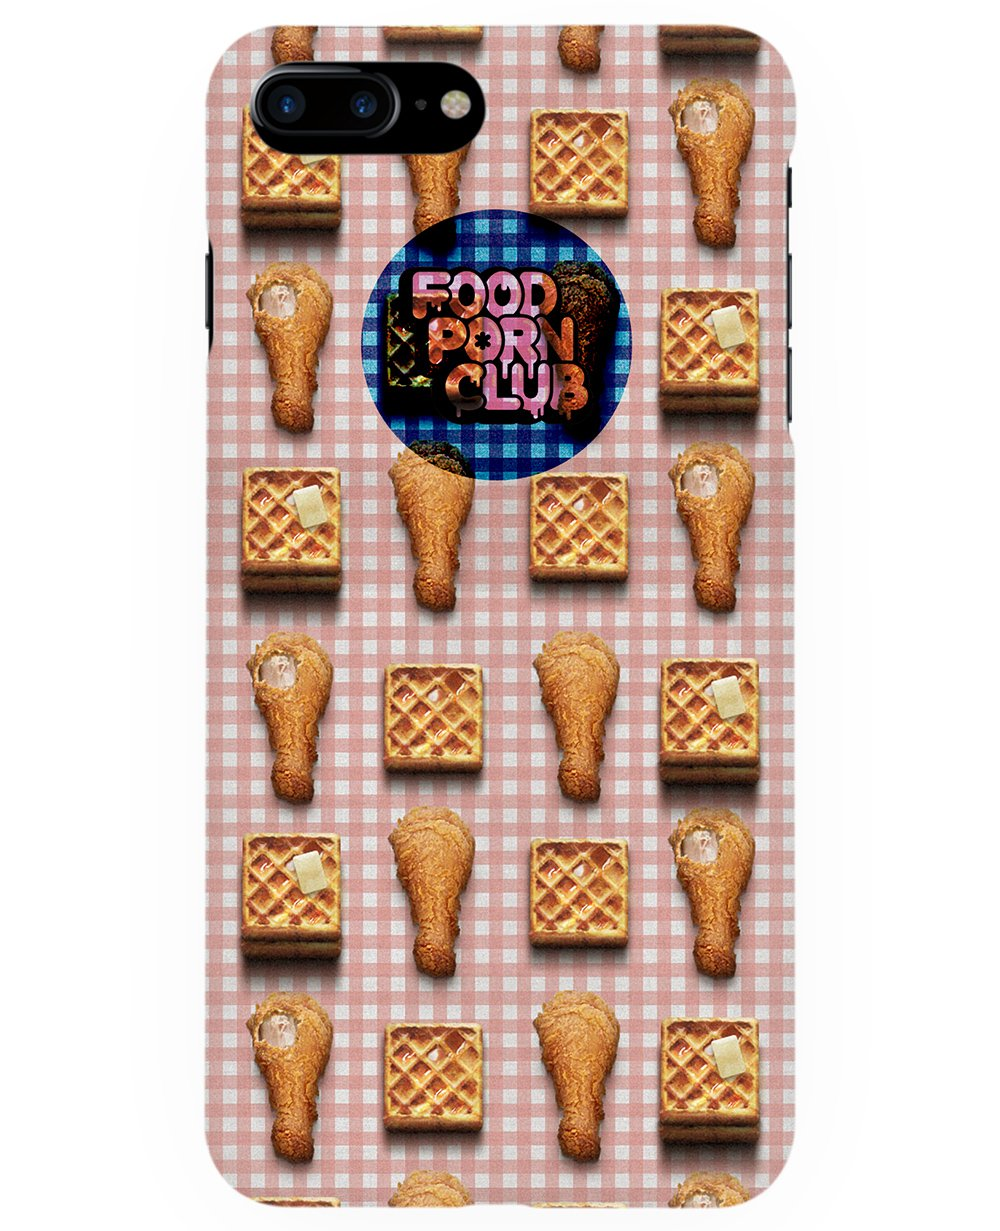 Waffle and Chicken Drumsticks Print Iphone Case - Phone cases - FOOD PORN CLUB - BRANMA